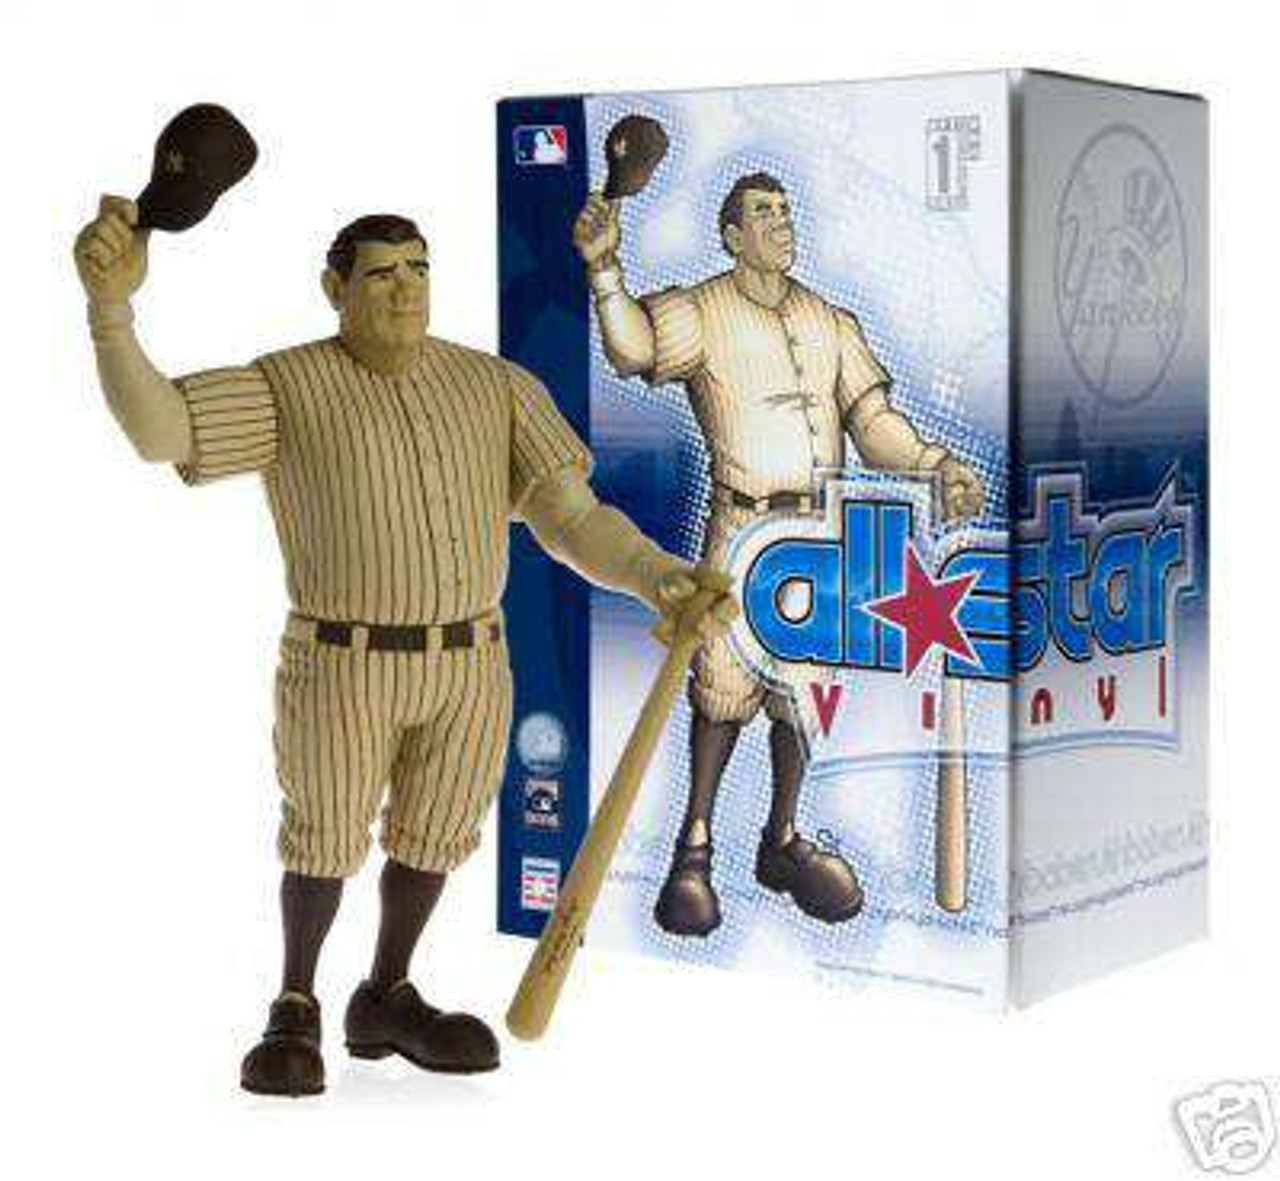 MLB New York Yankees All Star Vinyl Babe Ruth Vinyl Figure [Sepia Colored]